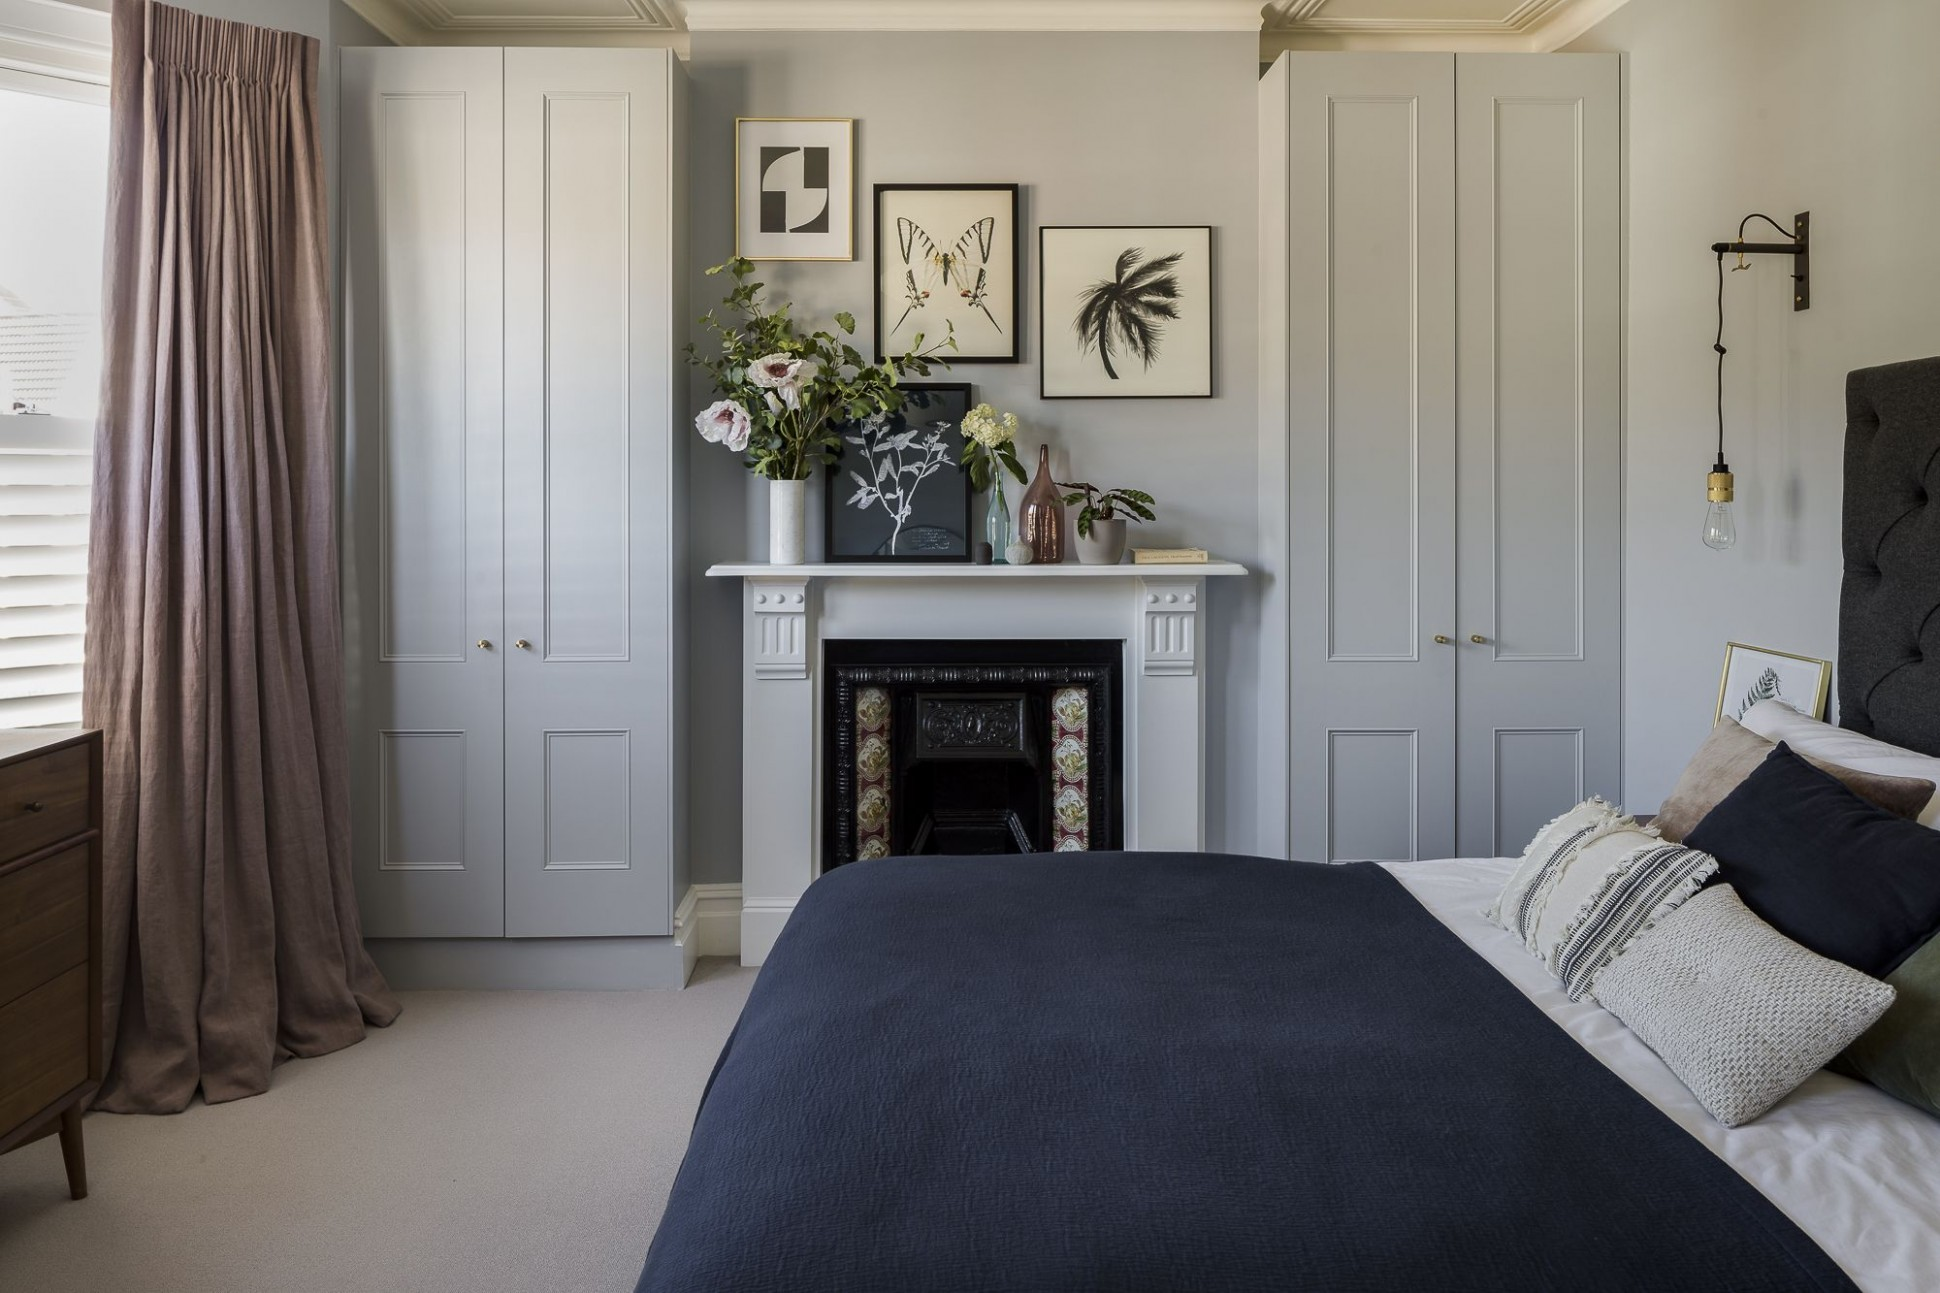 Interior Design by Imperfect Interiors at this Victorian terraced  - Bedroom Ideas Victorian Terrace